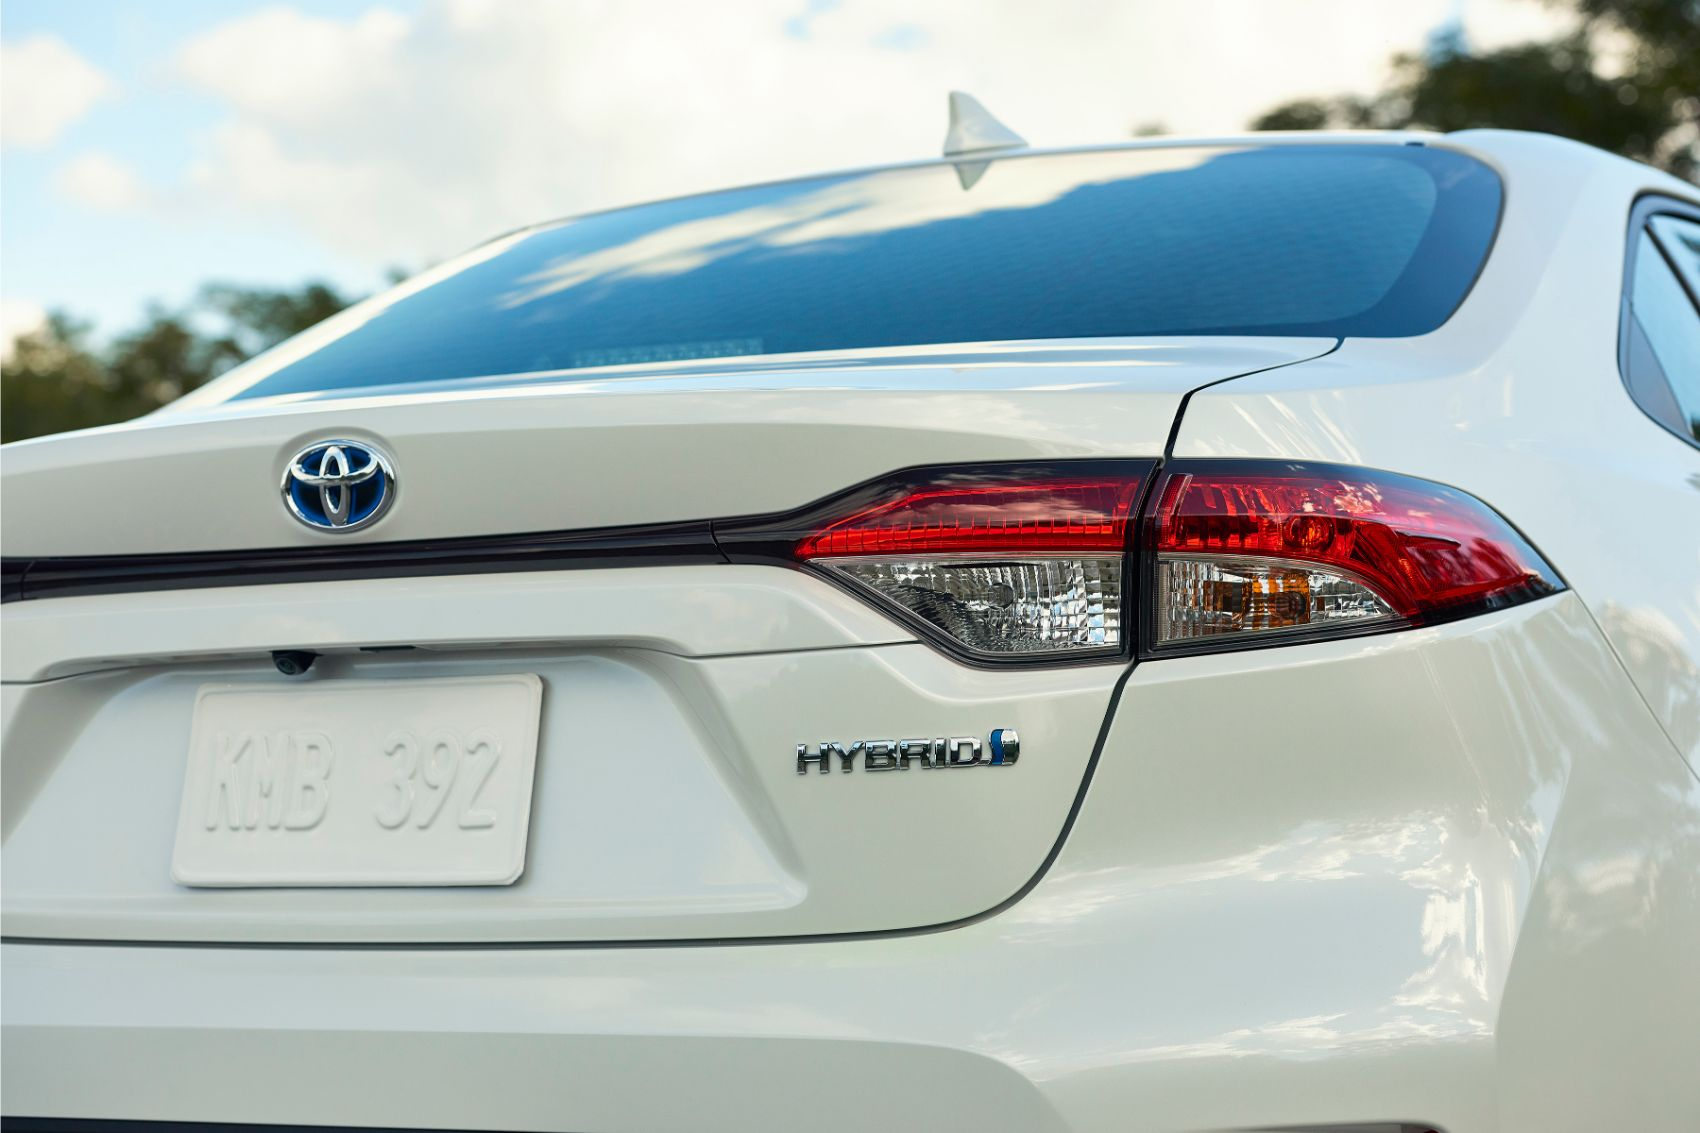 2020 Toyota Corolla Hybrid Review: We Skipped The Gas Station 16